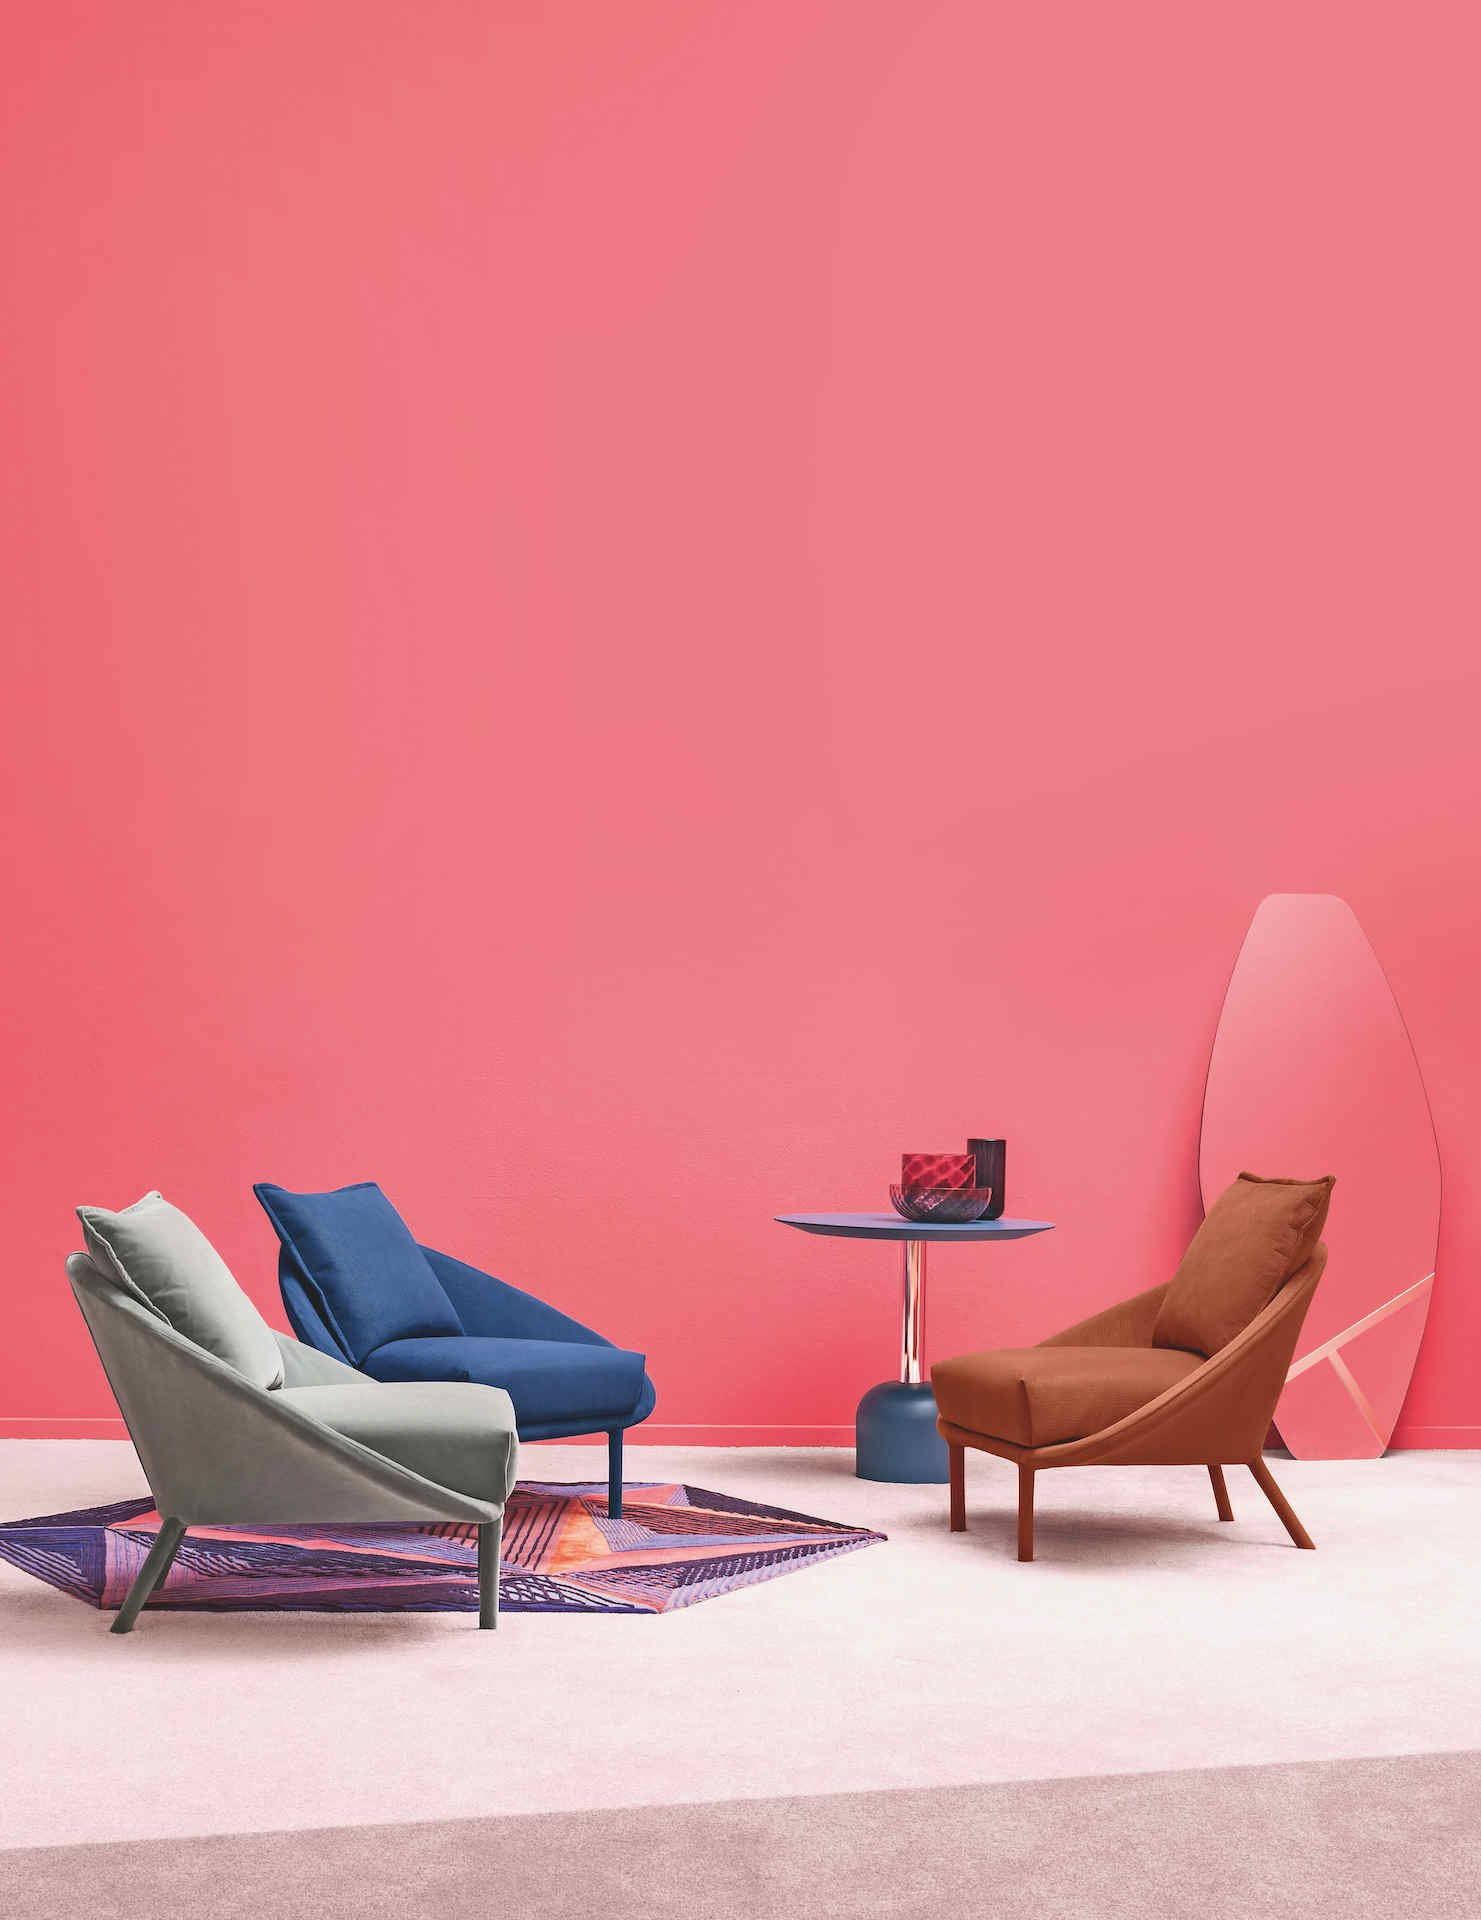 Lem Armchair lounge from Miniforms, designed by Francesco Beghetto